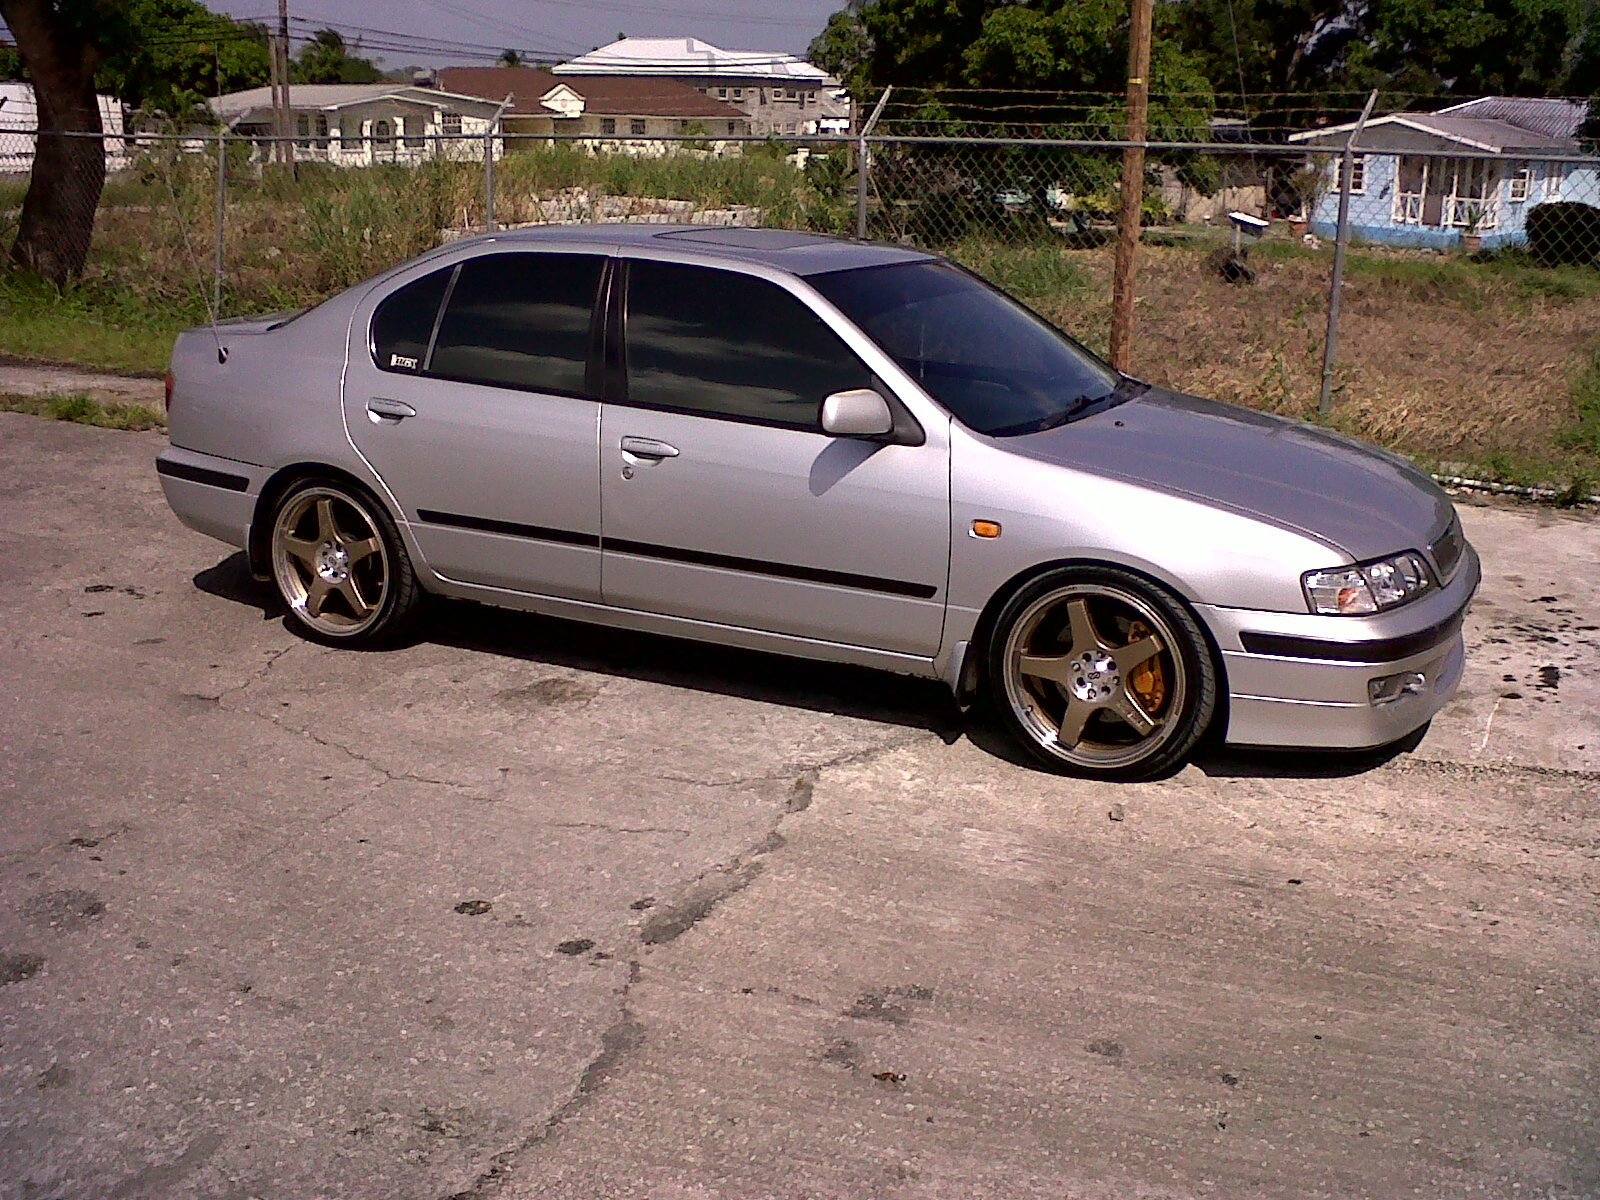 2000 Infiniti G20 4 Dr Touring Sedan picture